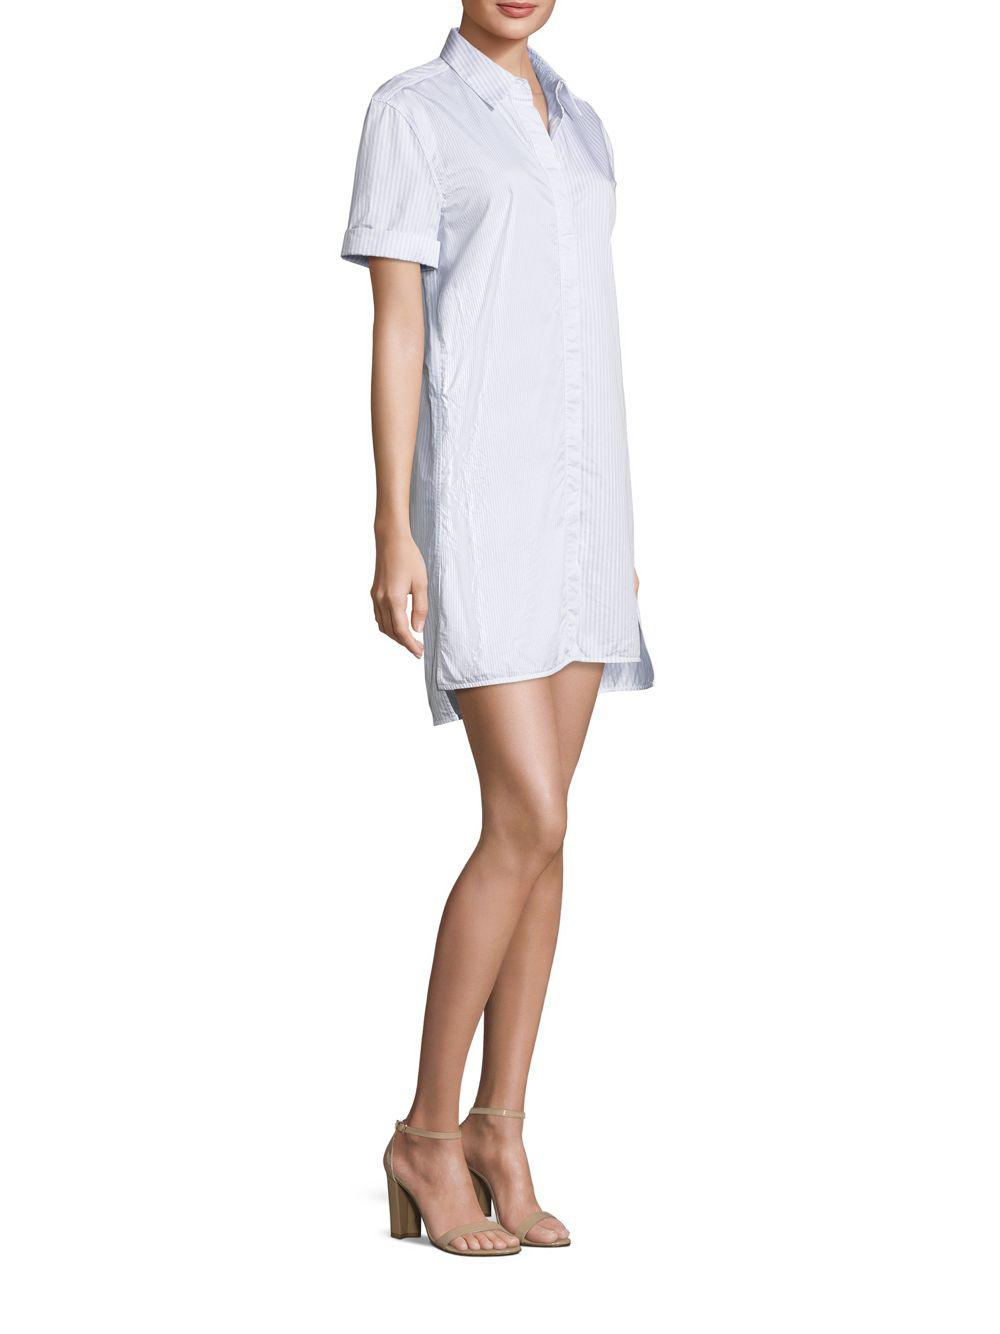 Equipment Mirelle Striped Shirtdress In White Save 40 Lyst